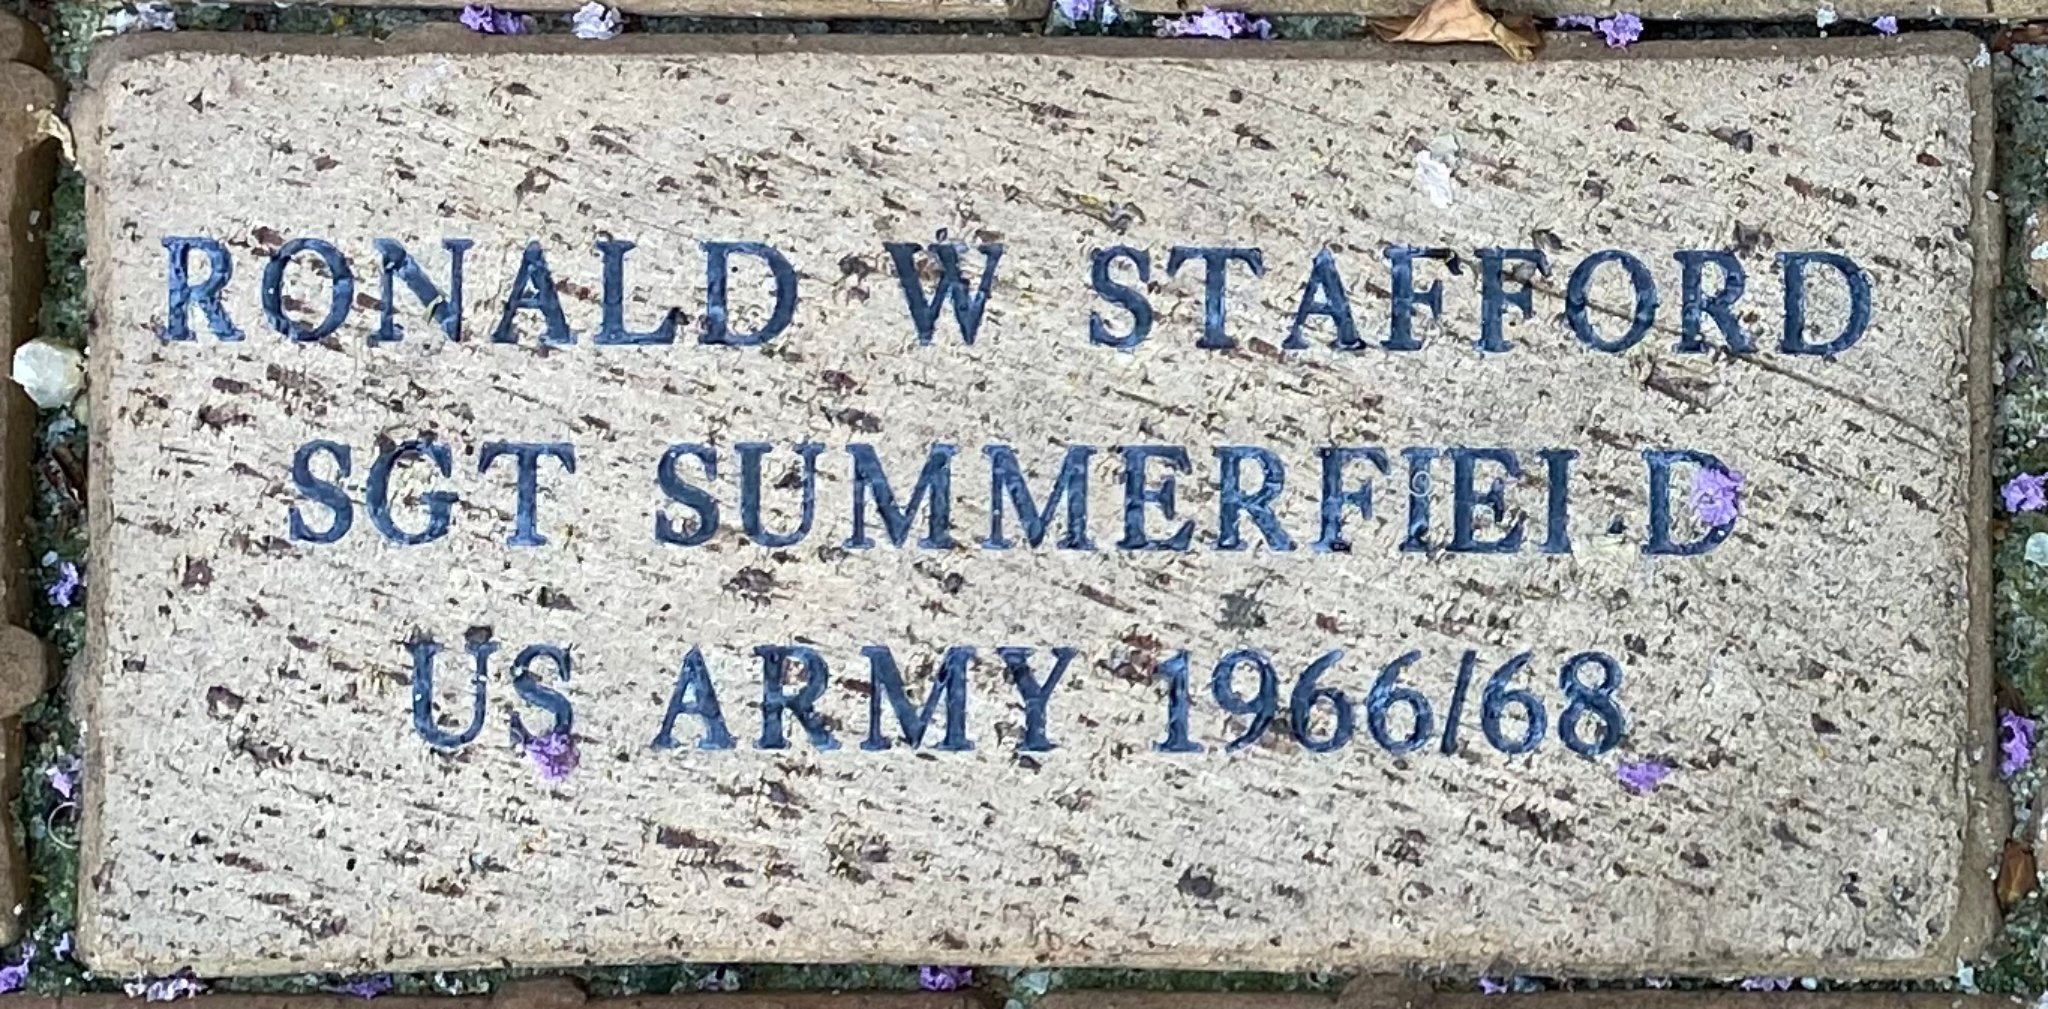 RONALD W STAFFORD SGT SUMMERFIELD  US ARMY 1966/68